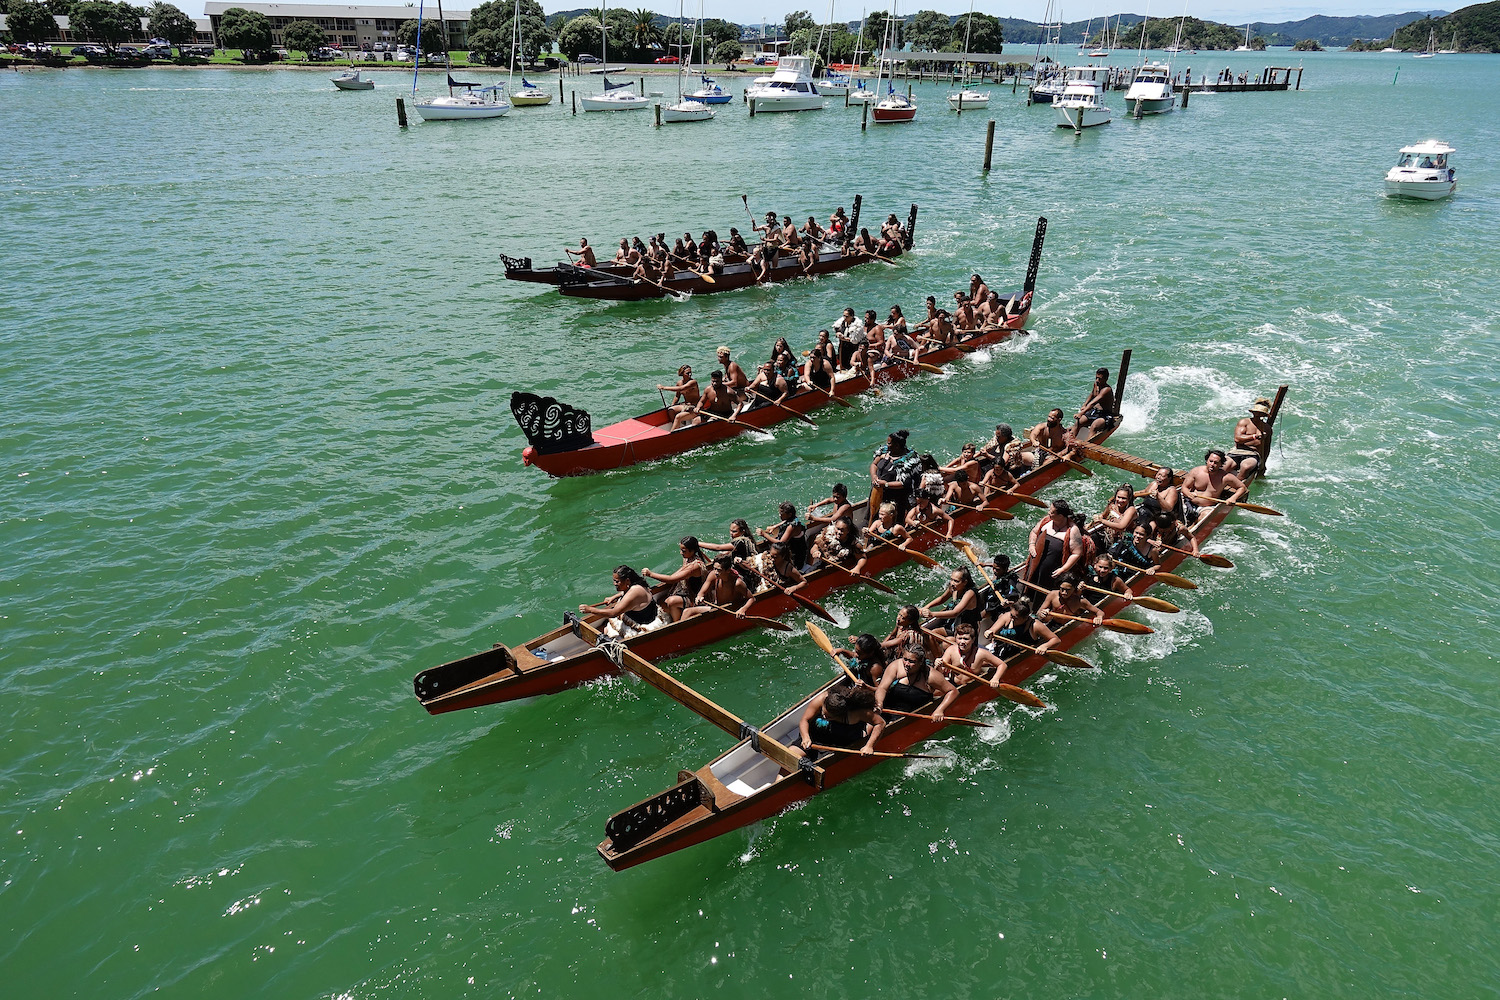 WAITANGI, NEW ZEALAND - FEBRUARY 06:  A fleet of Waka make their way around Te Ti Bay on February 6, 2018 in Waitangi, New Zealand. The Waitangi Day national holiday celebrates the signing of the treaty of Waitangi on February 6, 1840 by Maori chiefs and the British Crown, that granted the Maori people the rights of British Citizens and ownership of their lands and other properties.  (Photo by Phil Walter/Getty Images)